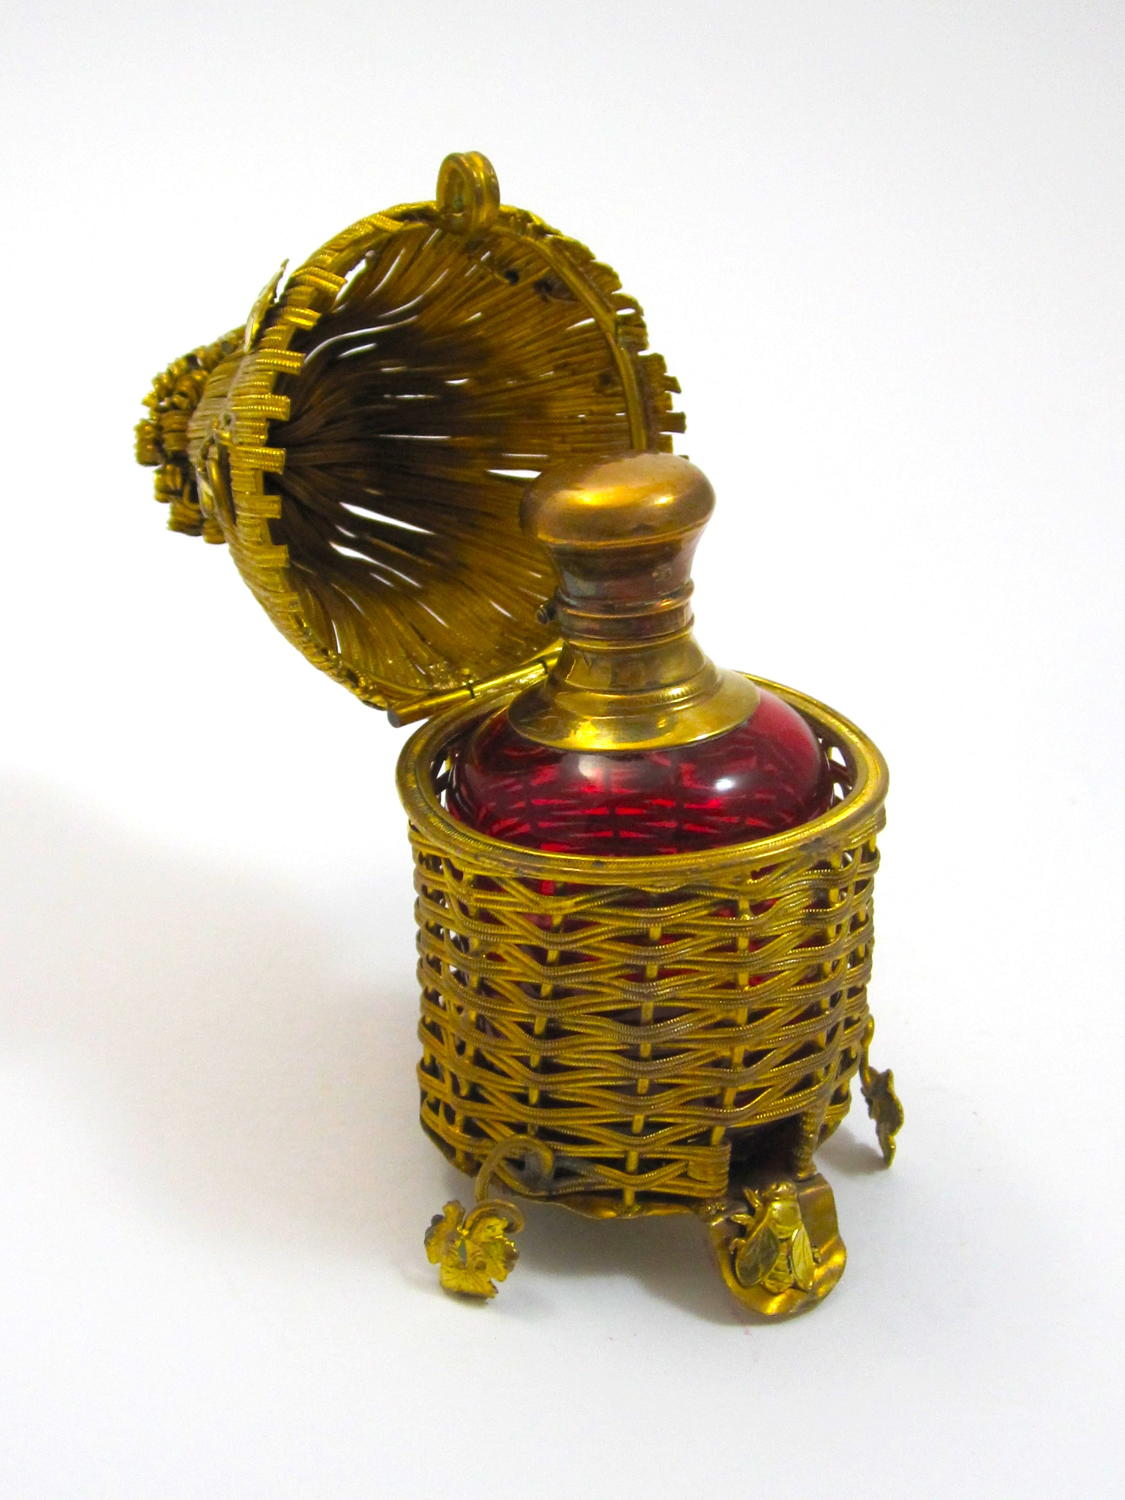 Rare Antique Palais Royal Bee Hive Perfume Bottle Set.